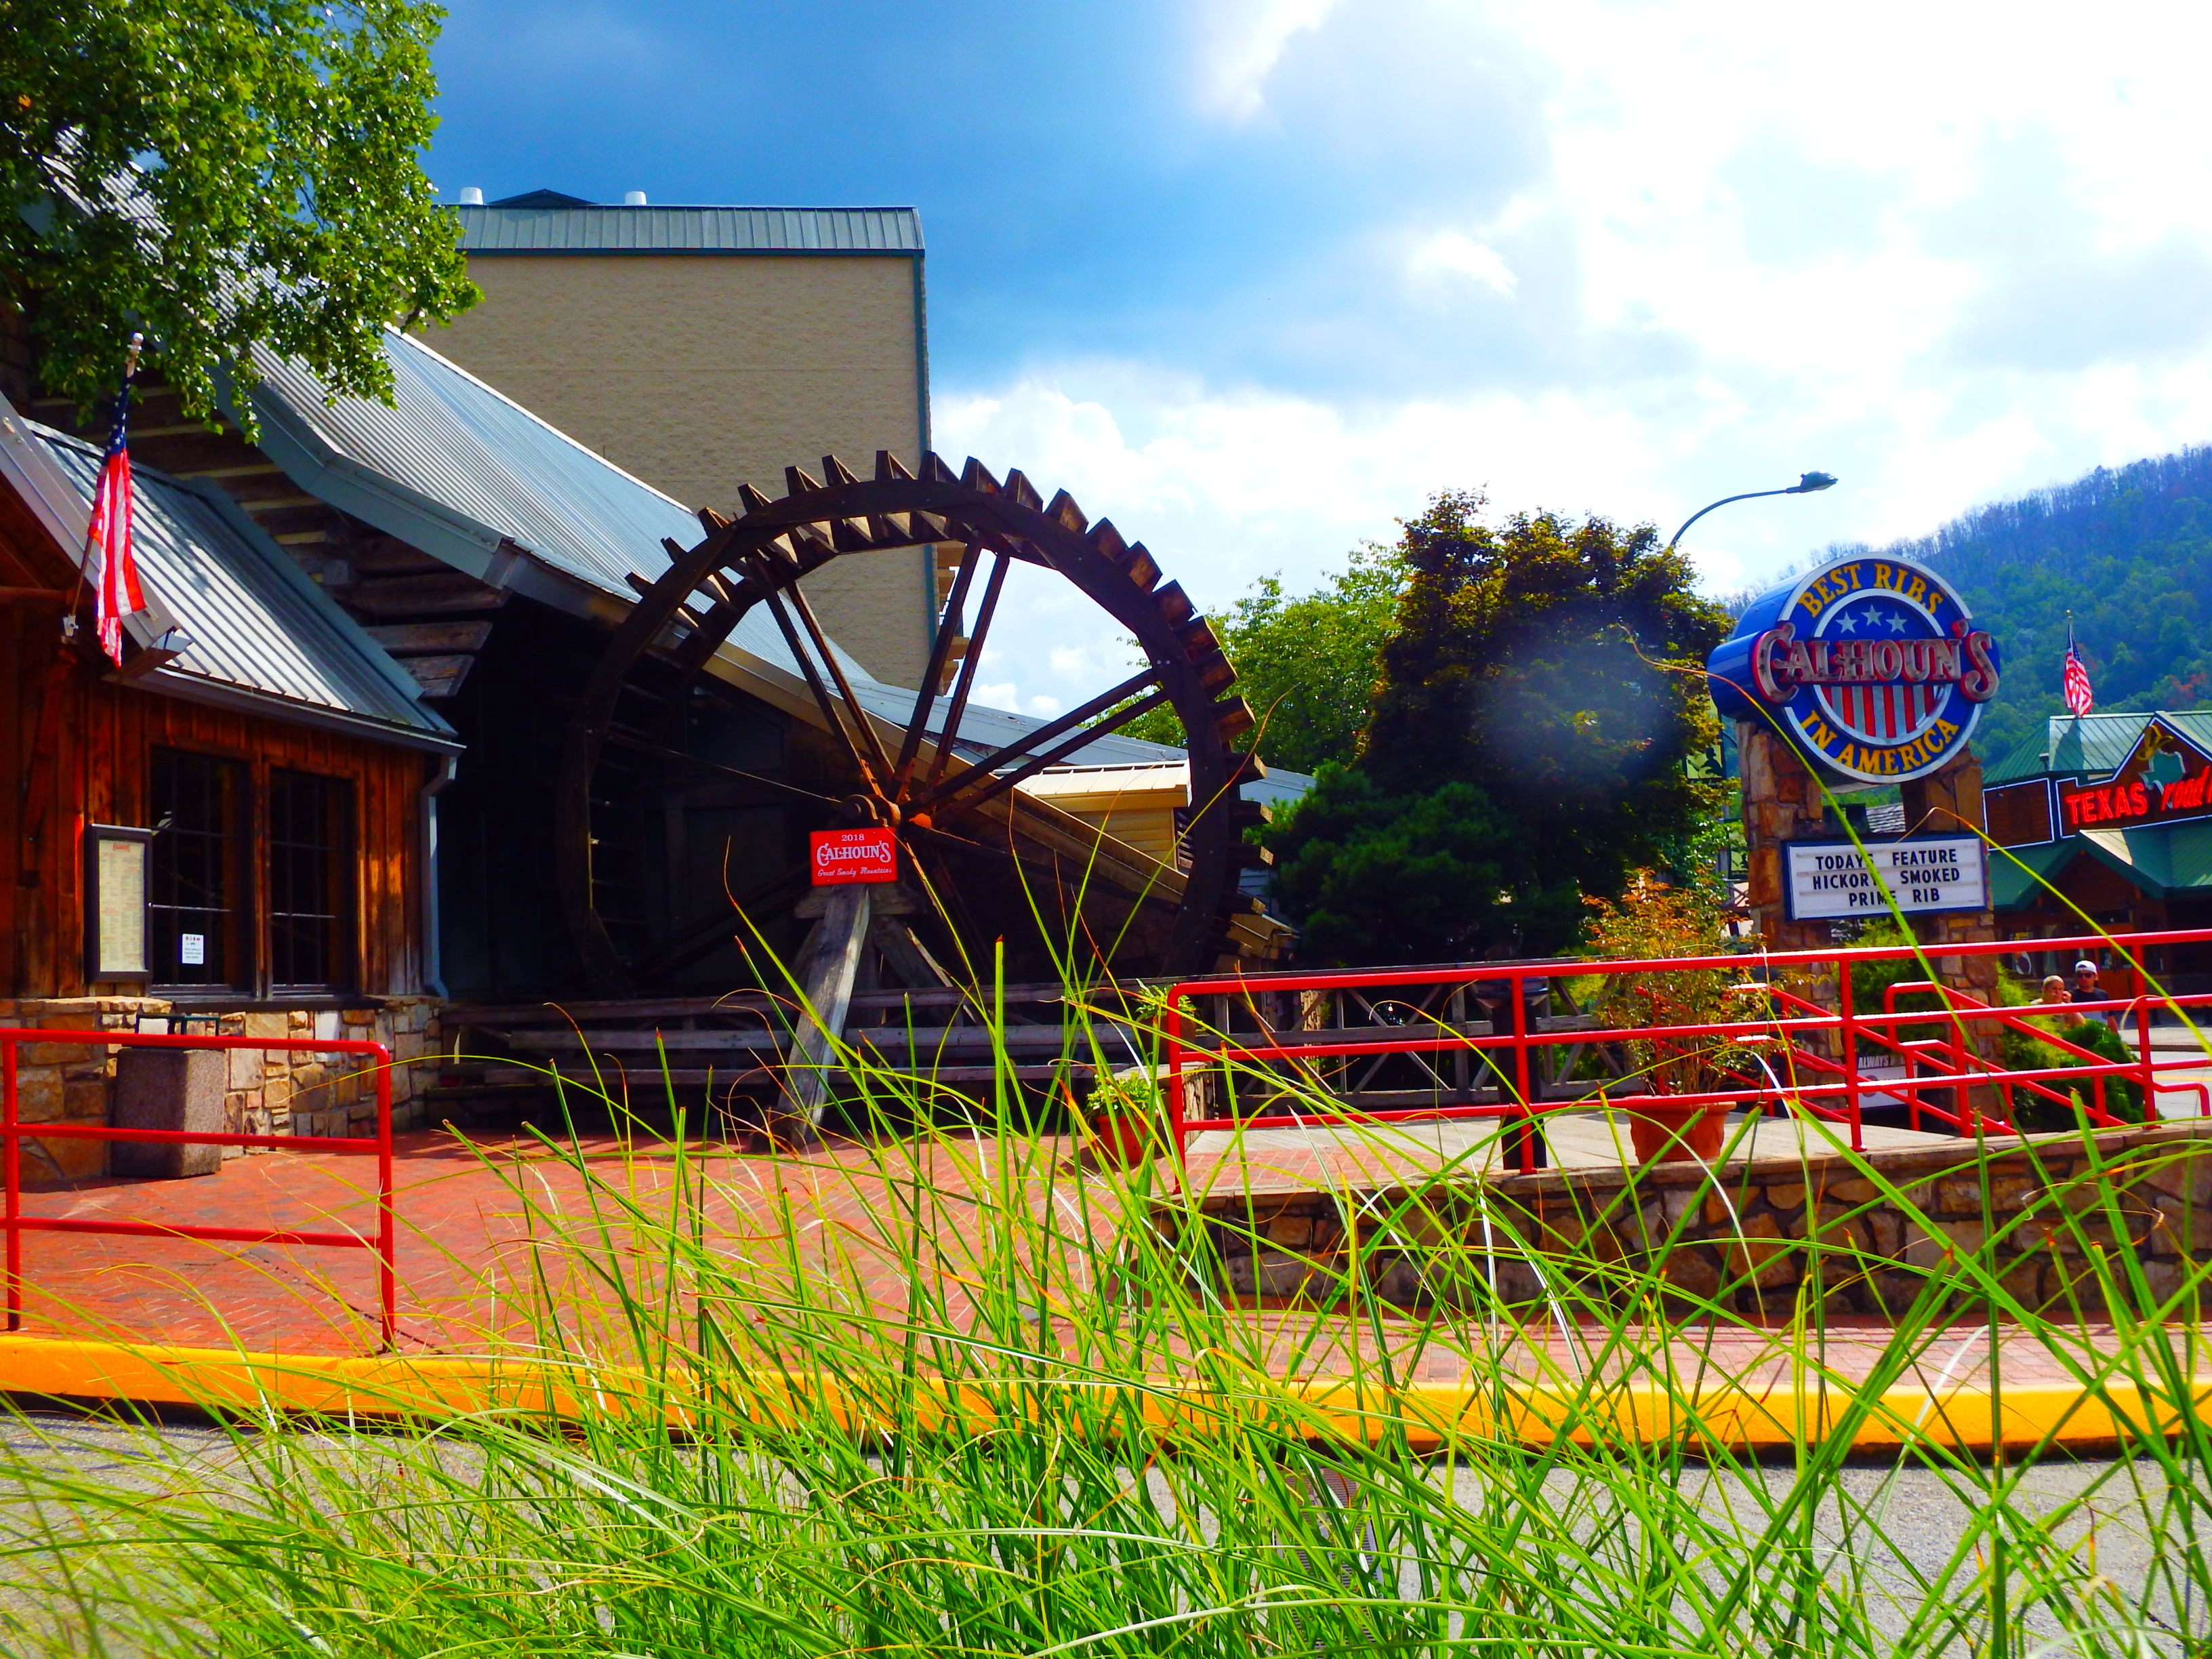 If you want fine dining in Gatlinburg Calhouns has delicious cuisine every day of the week!